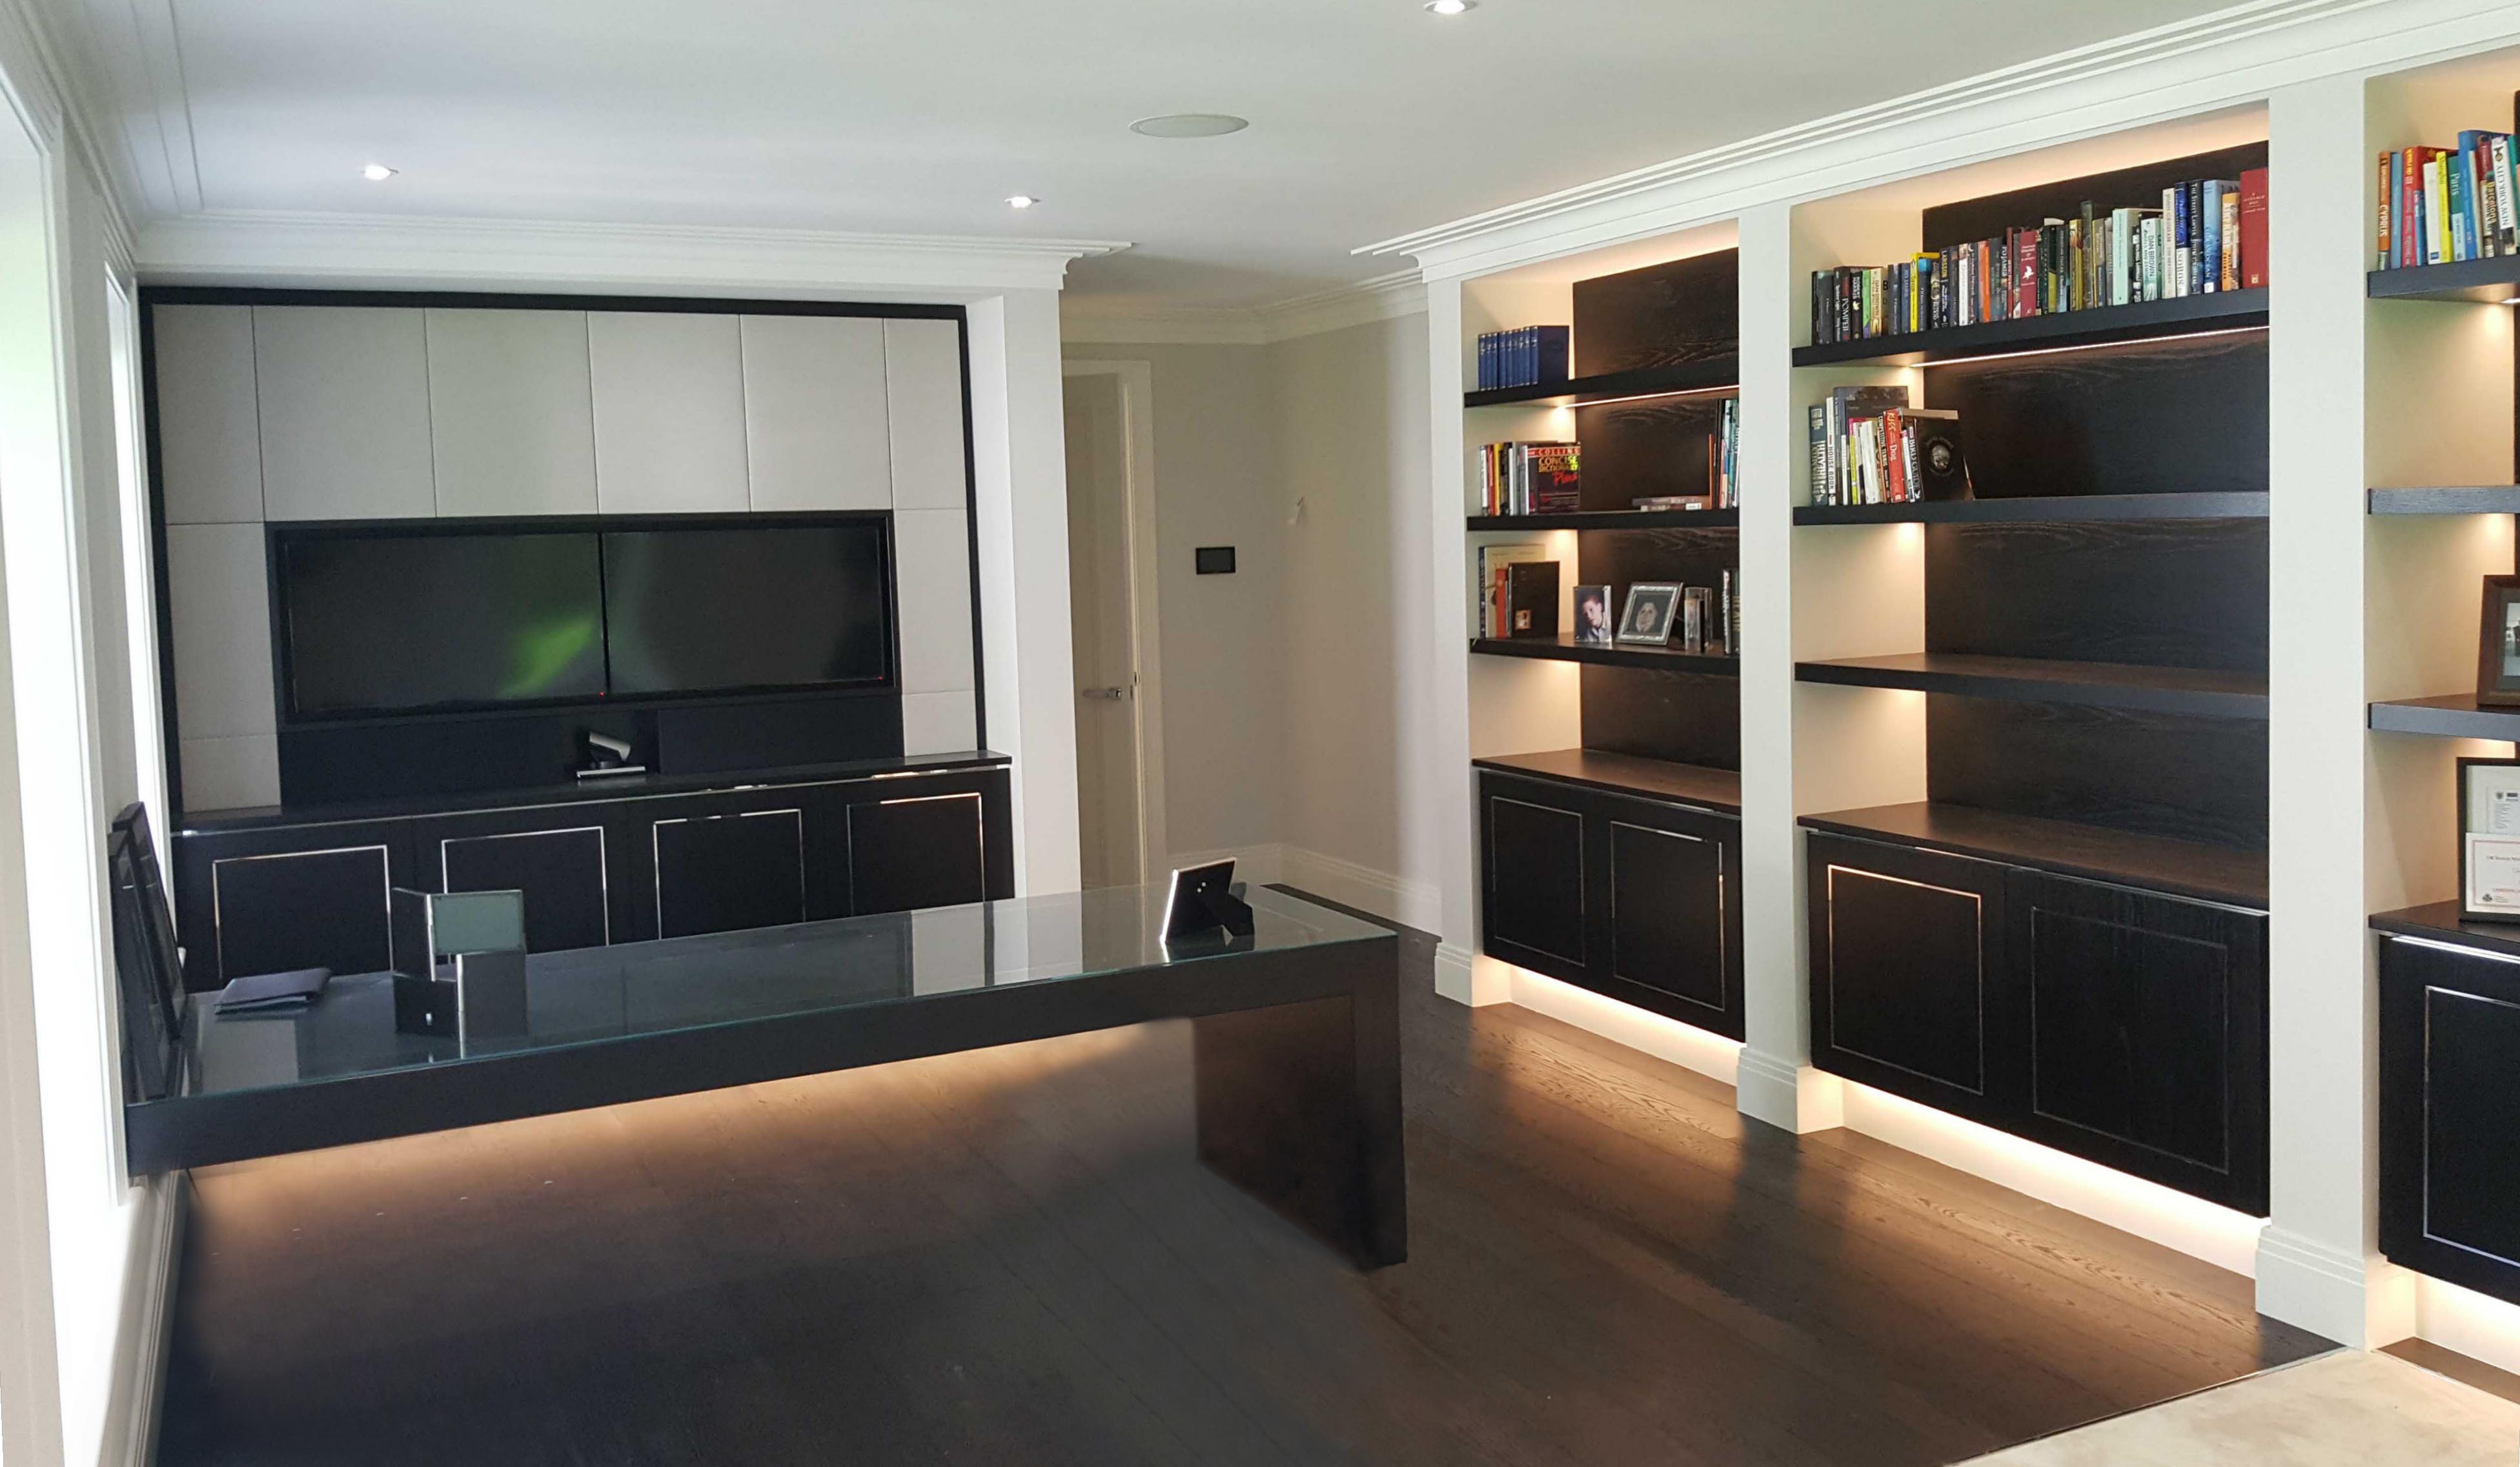 Wall to Wall Bookcase Shelving, Desk and Fitted Media Unit